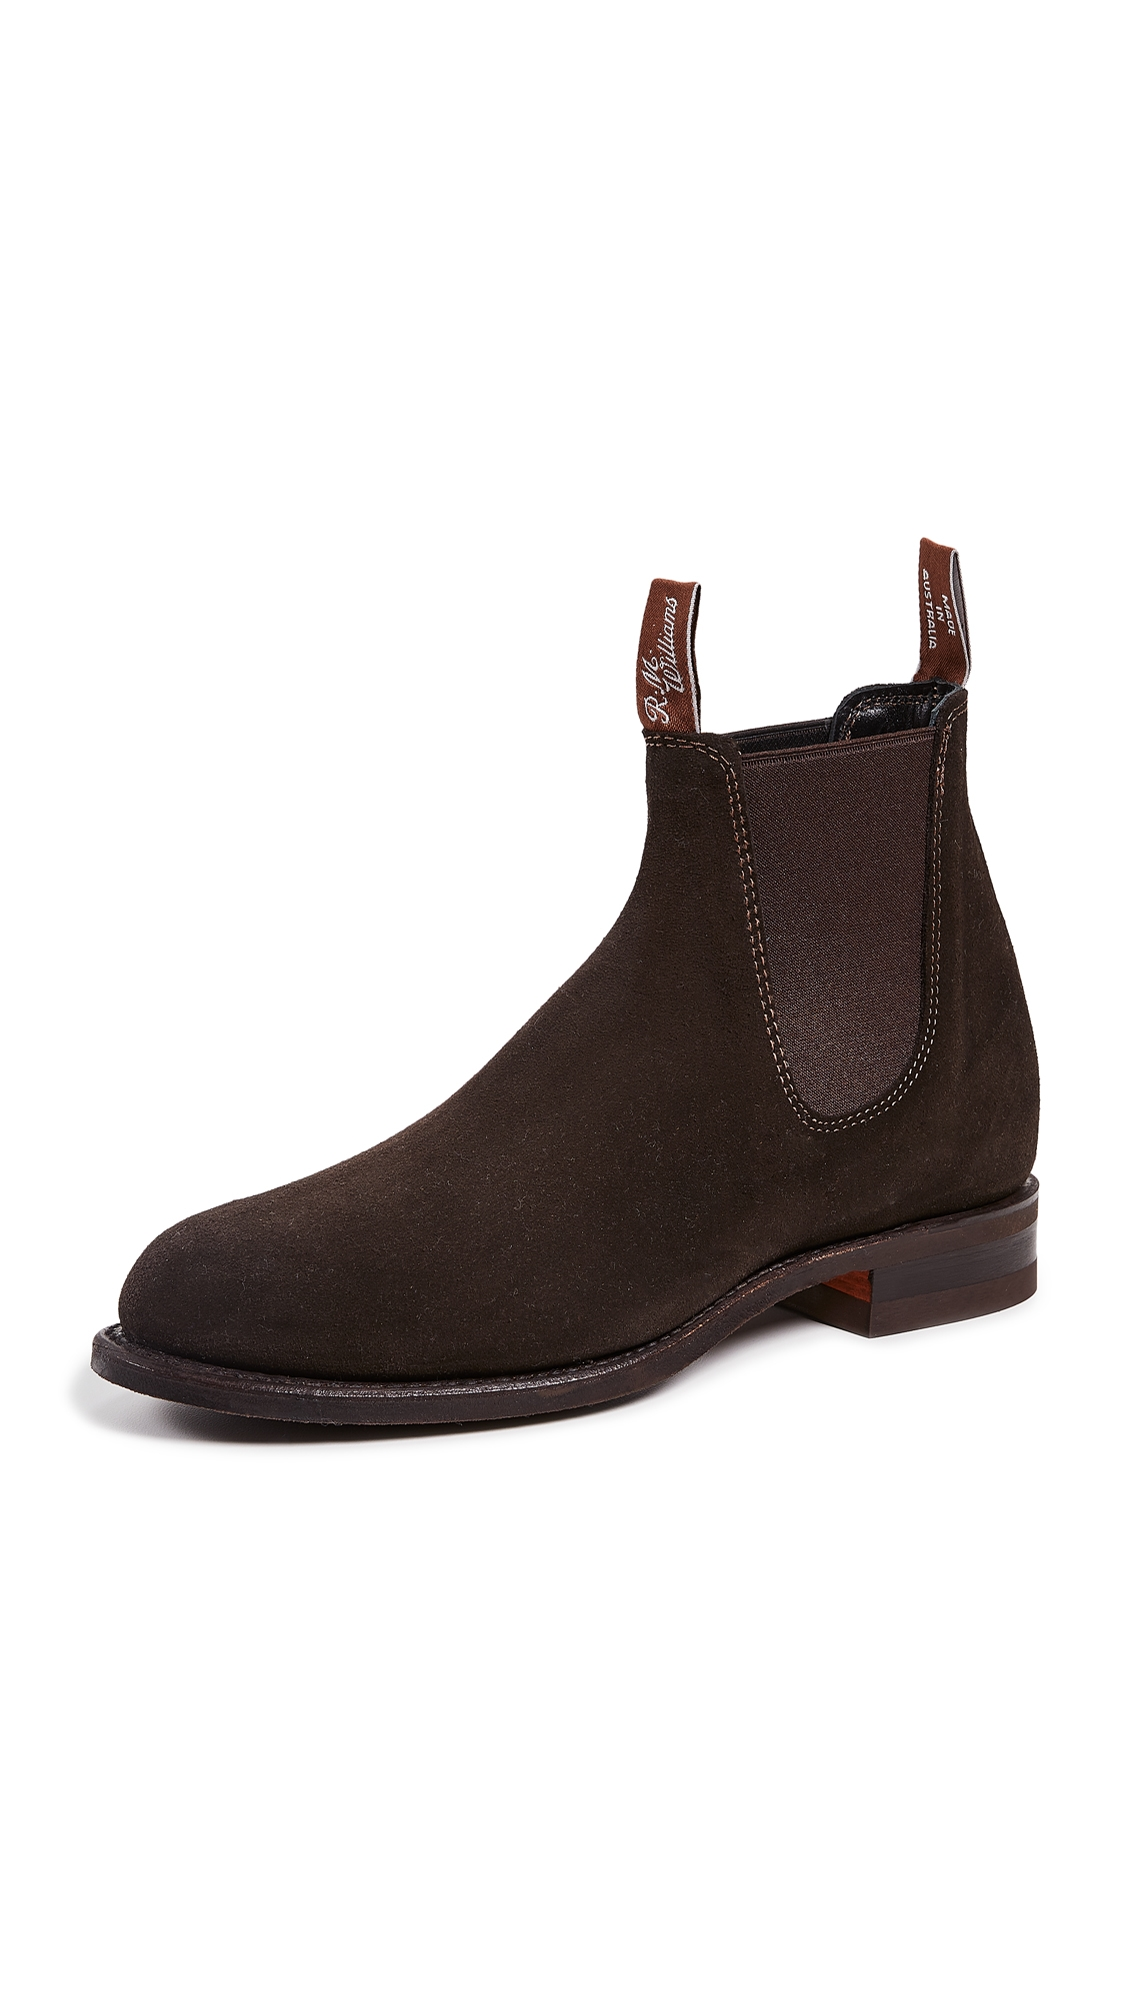 R.M.WILLIAMS Comfort Turnout Boots in Chocolate